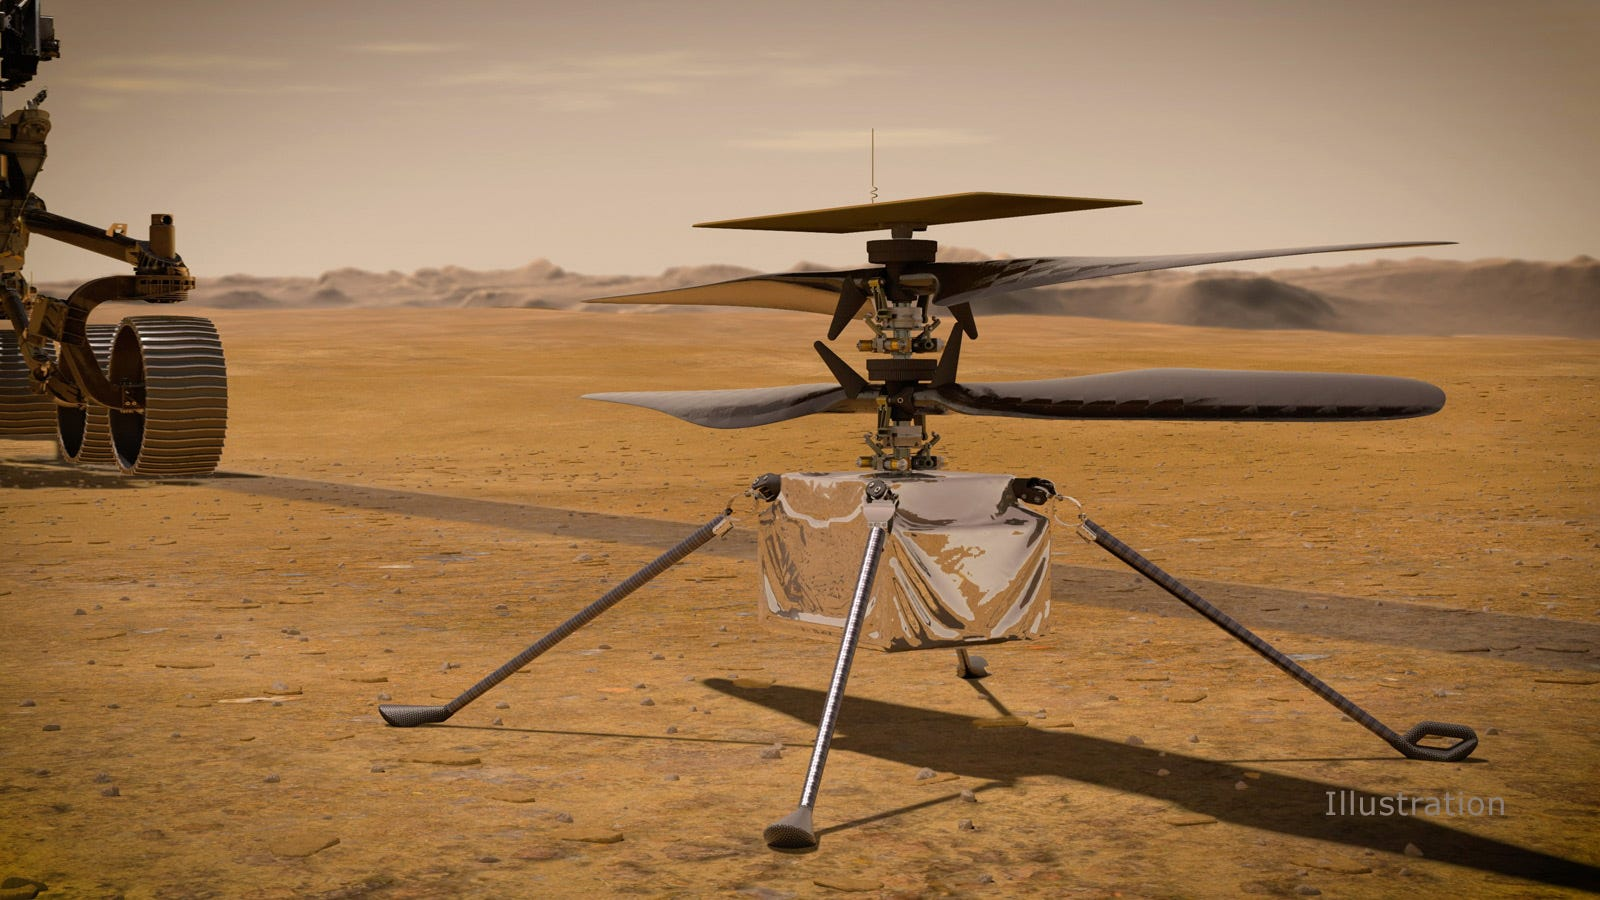 Artist's conception of Ingenuity on Mars.